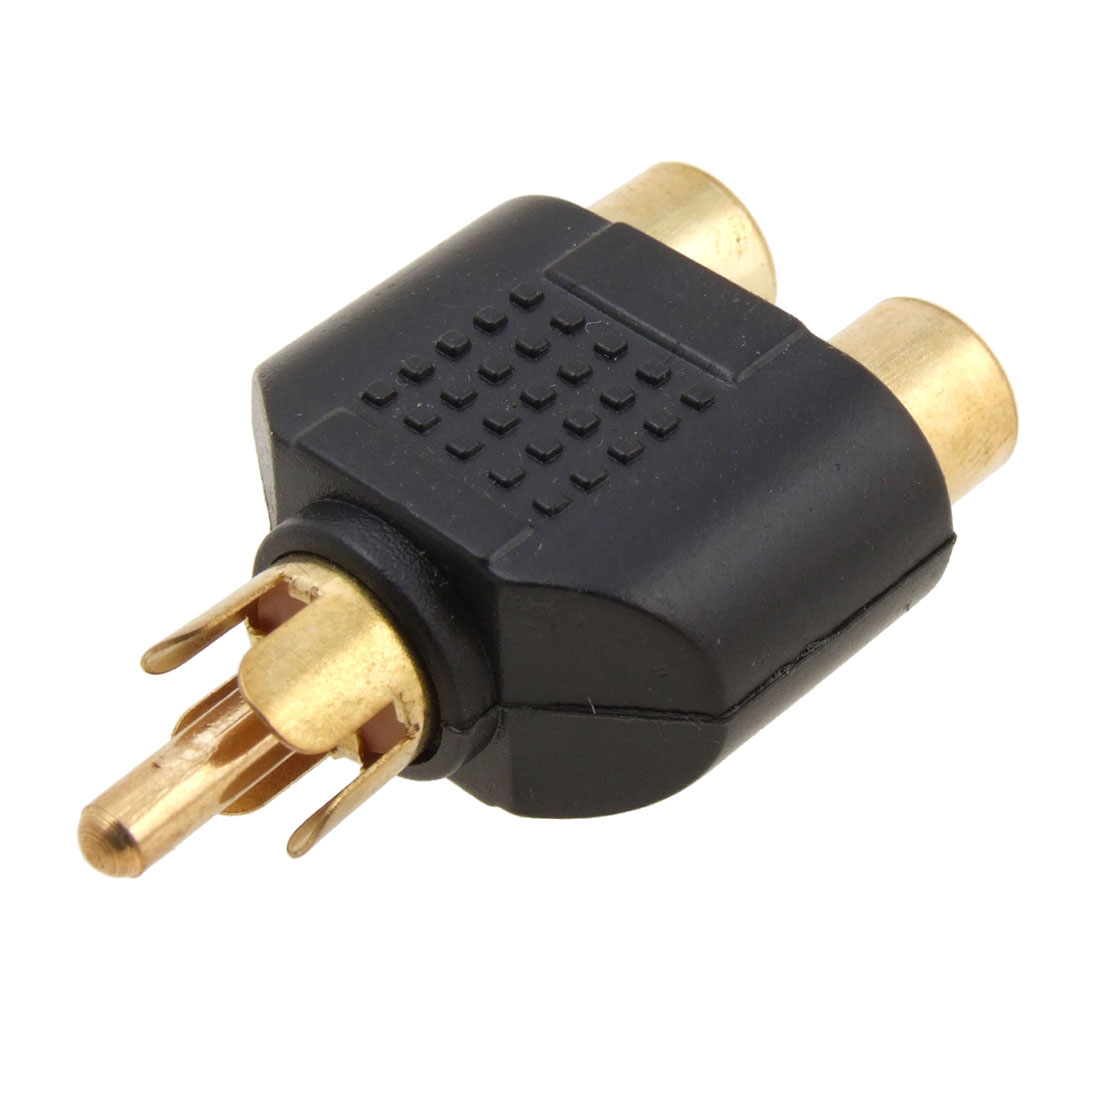 Unique Bargains TV Gold Plated RCA Y Splitter Male Plug to 2 x Female Sockets Converter Adapter